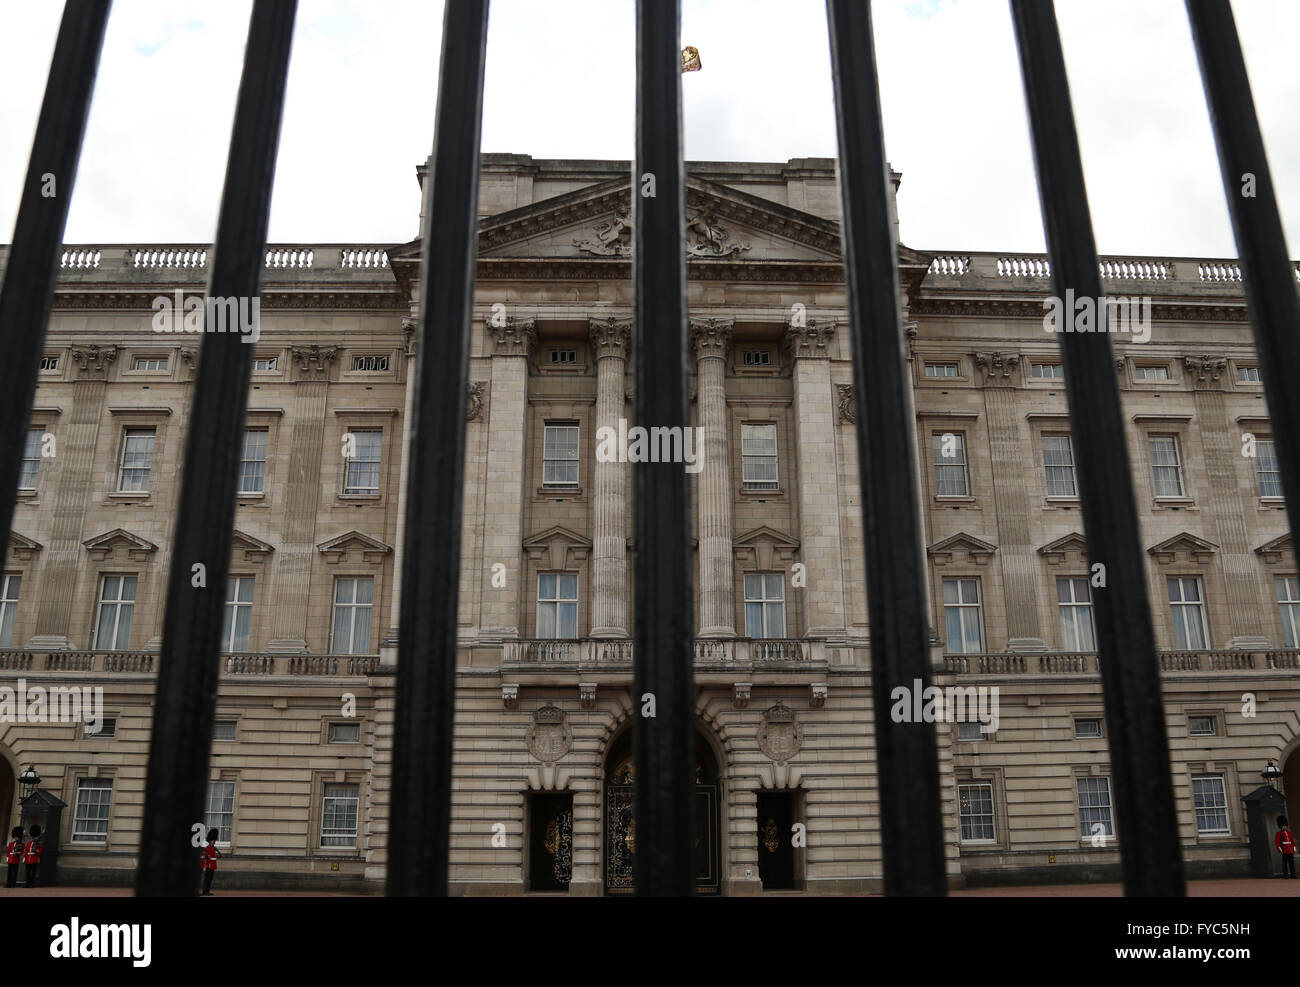 The bars of the iron gate in front of Buckingham Palace. - Stock Image